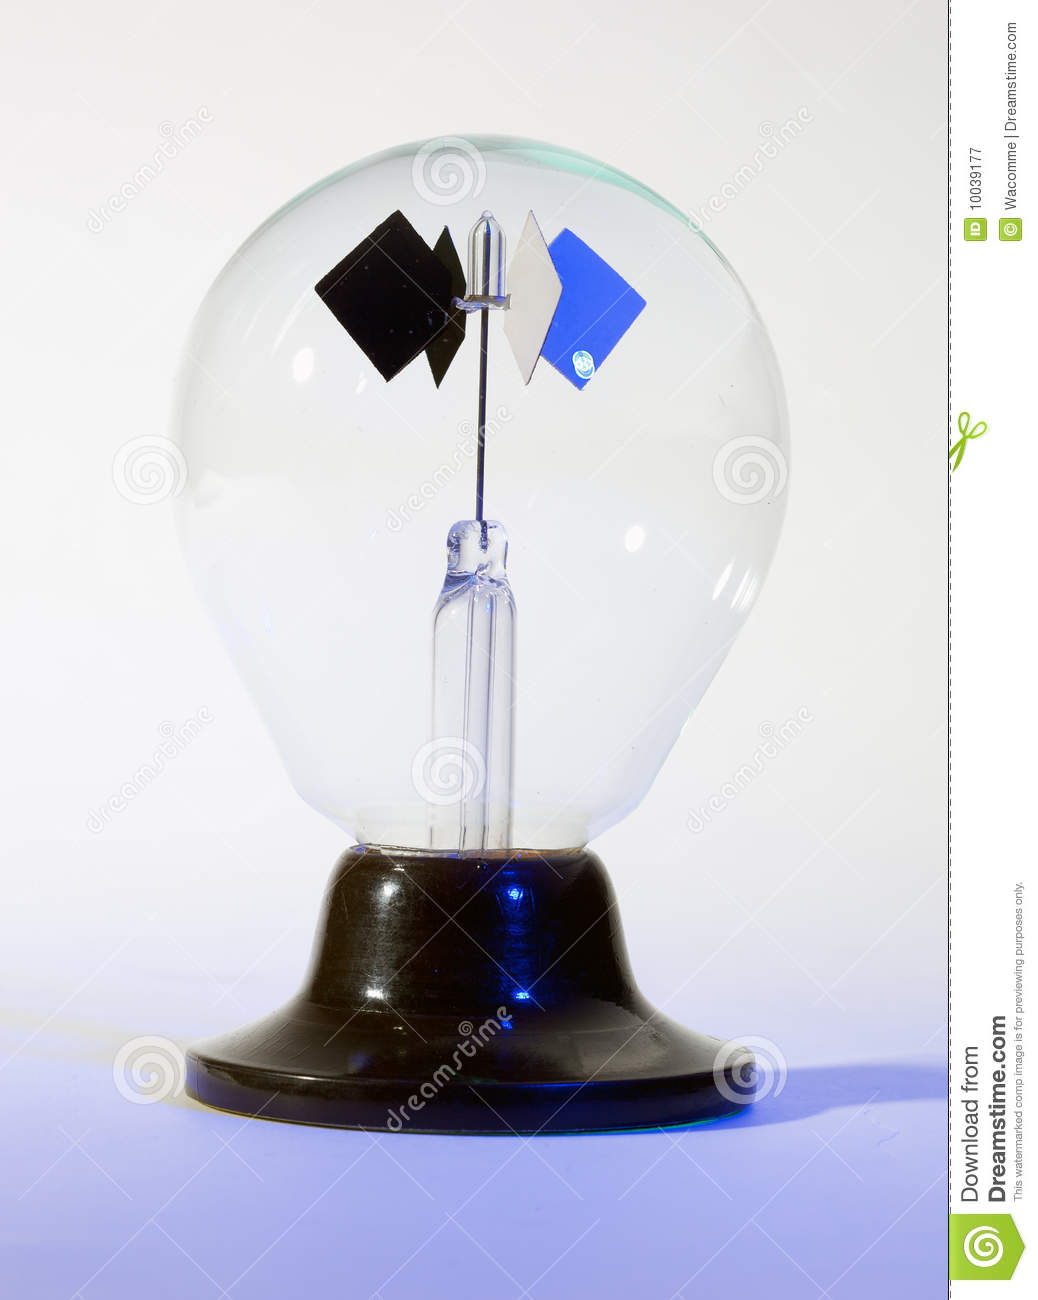 Royalty Free Stock Photography Abstract Solar Panel Icon Image18413317 likewise Stock Photography Light Bulb White Background Image4119352 as well Broadcasting Satellite further 393 likewise Peking Opera With Madame Ping Sun Feb 5. on solar panel background